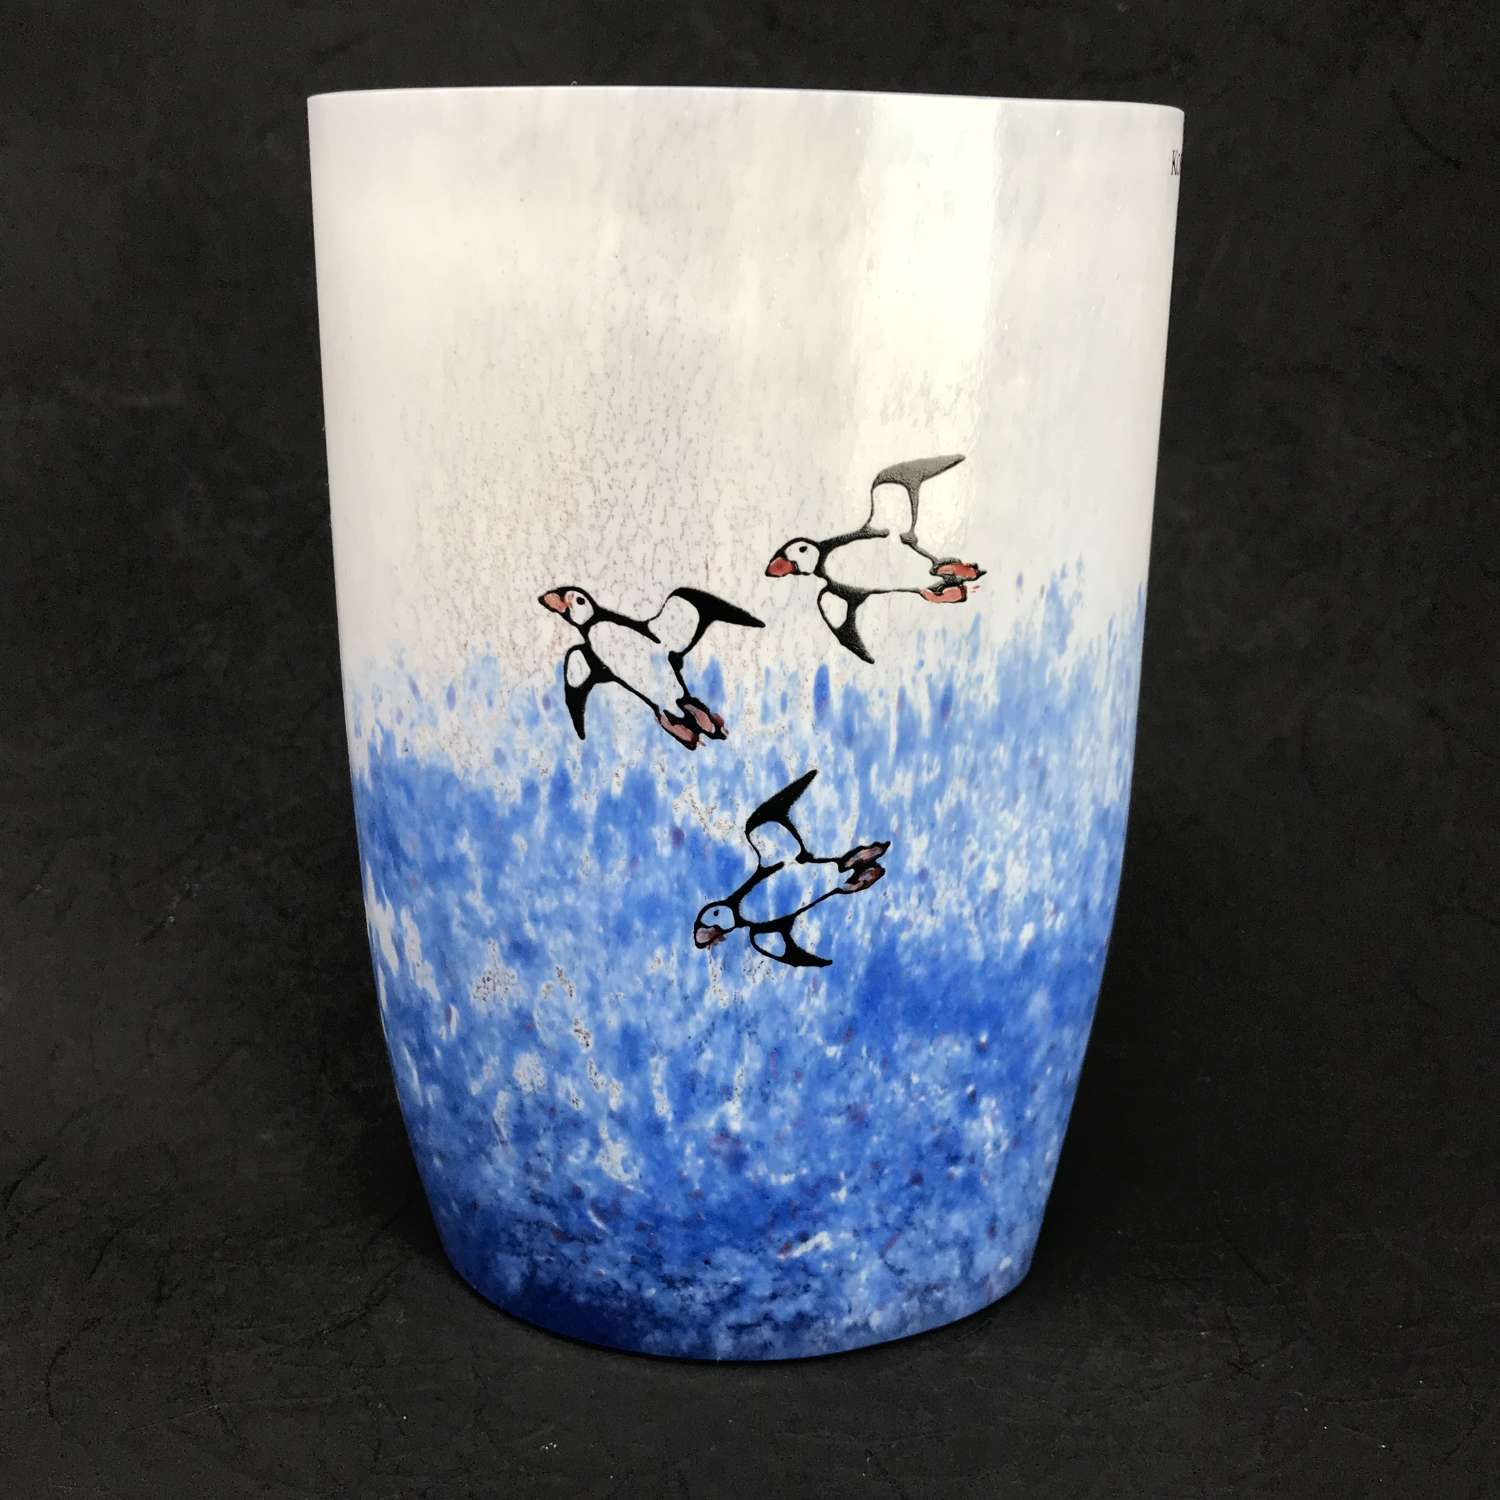 Kjell Engman medium vase with puffins, Kosta Boda, Sweden 1980s